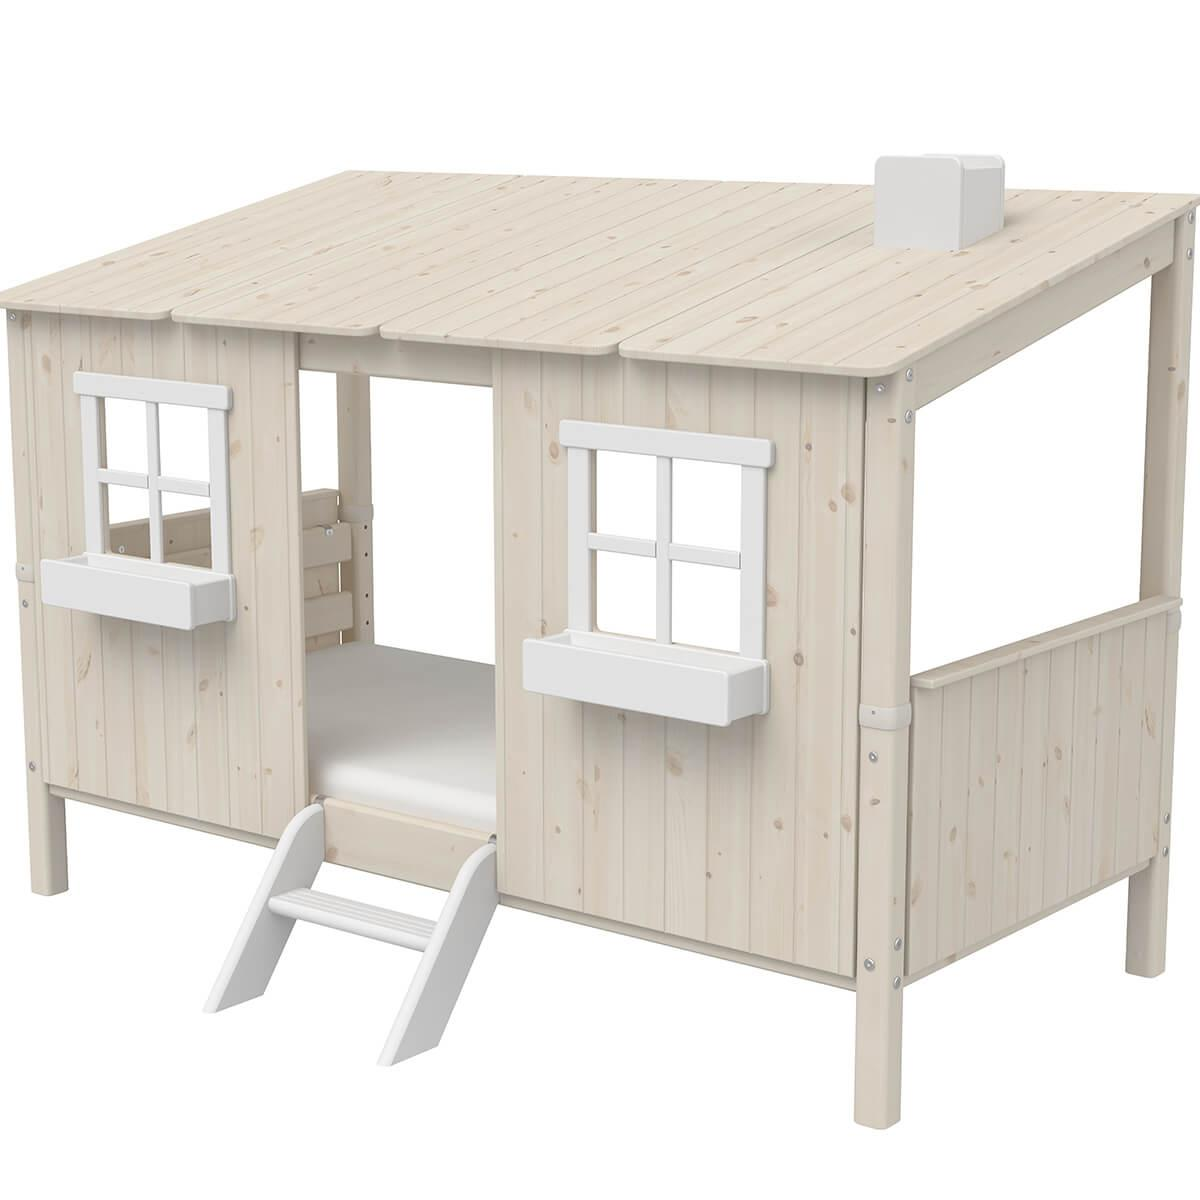 Escalera corta PLAY HOUSE CLASSIC Flexa blanco